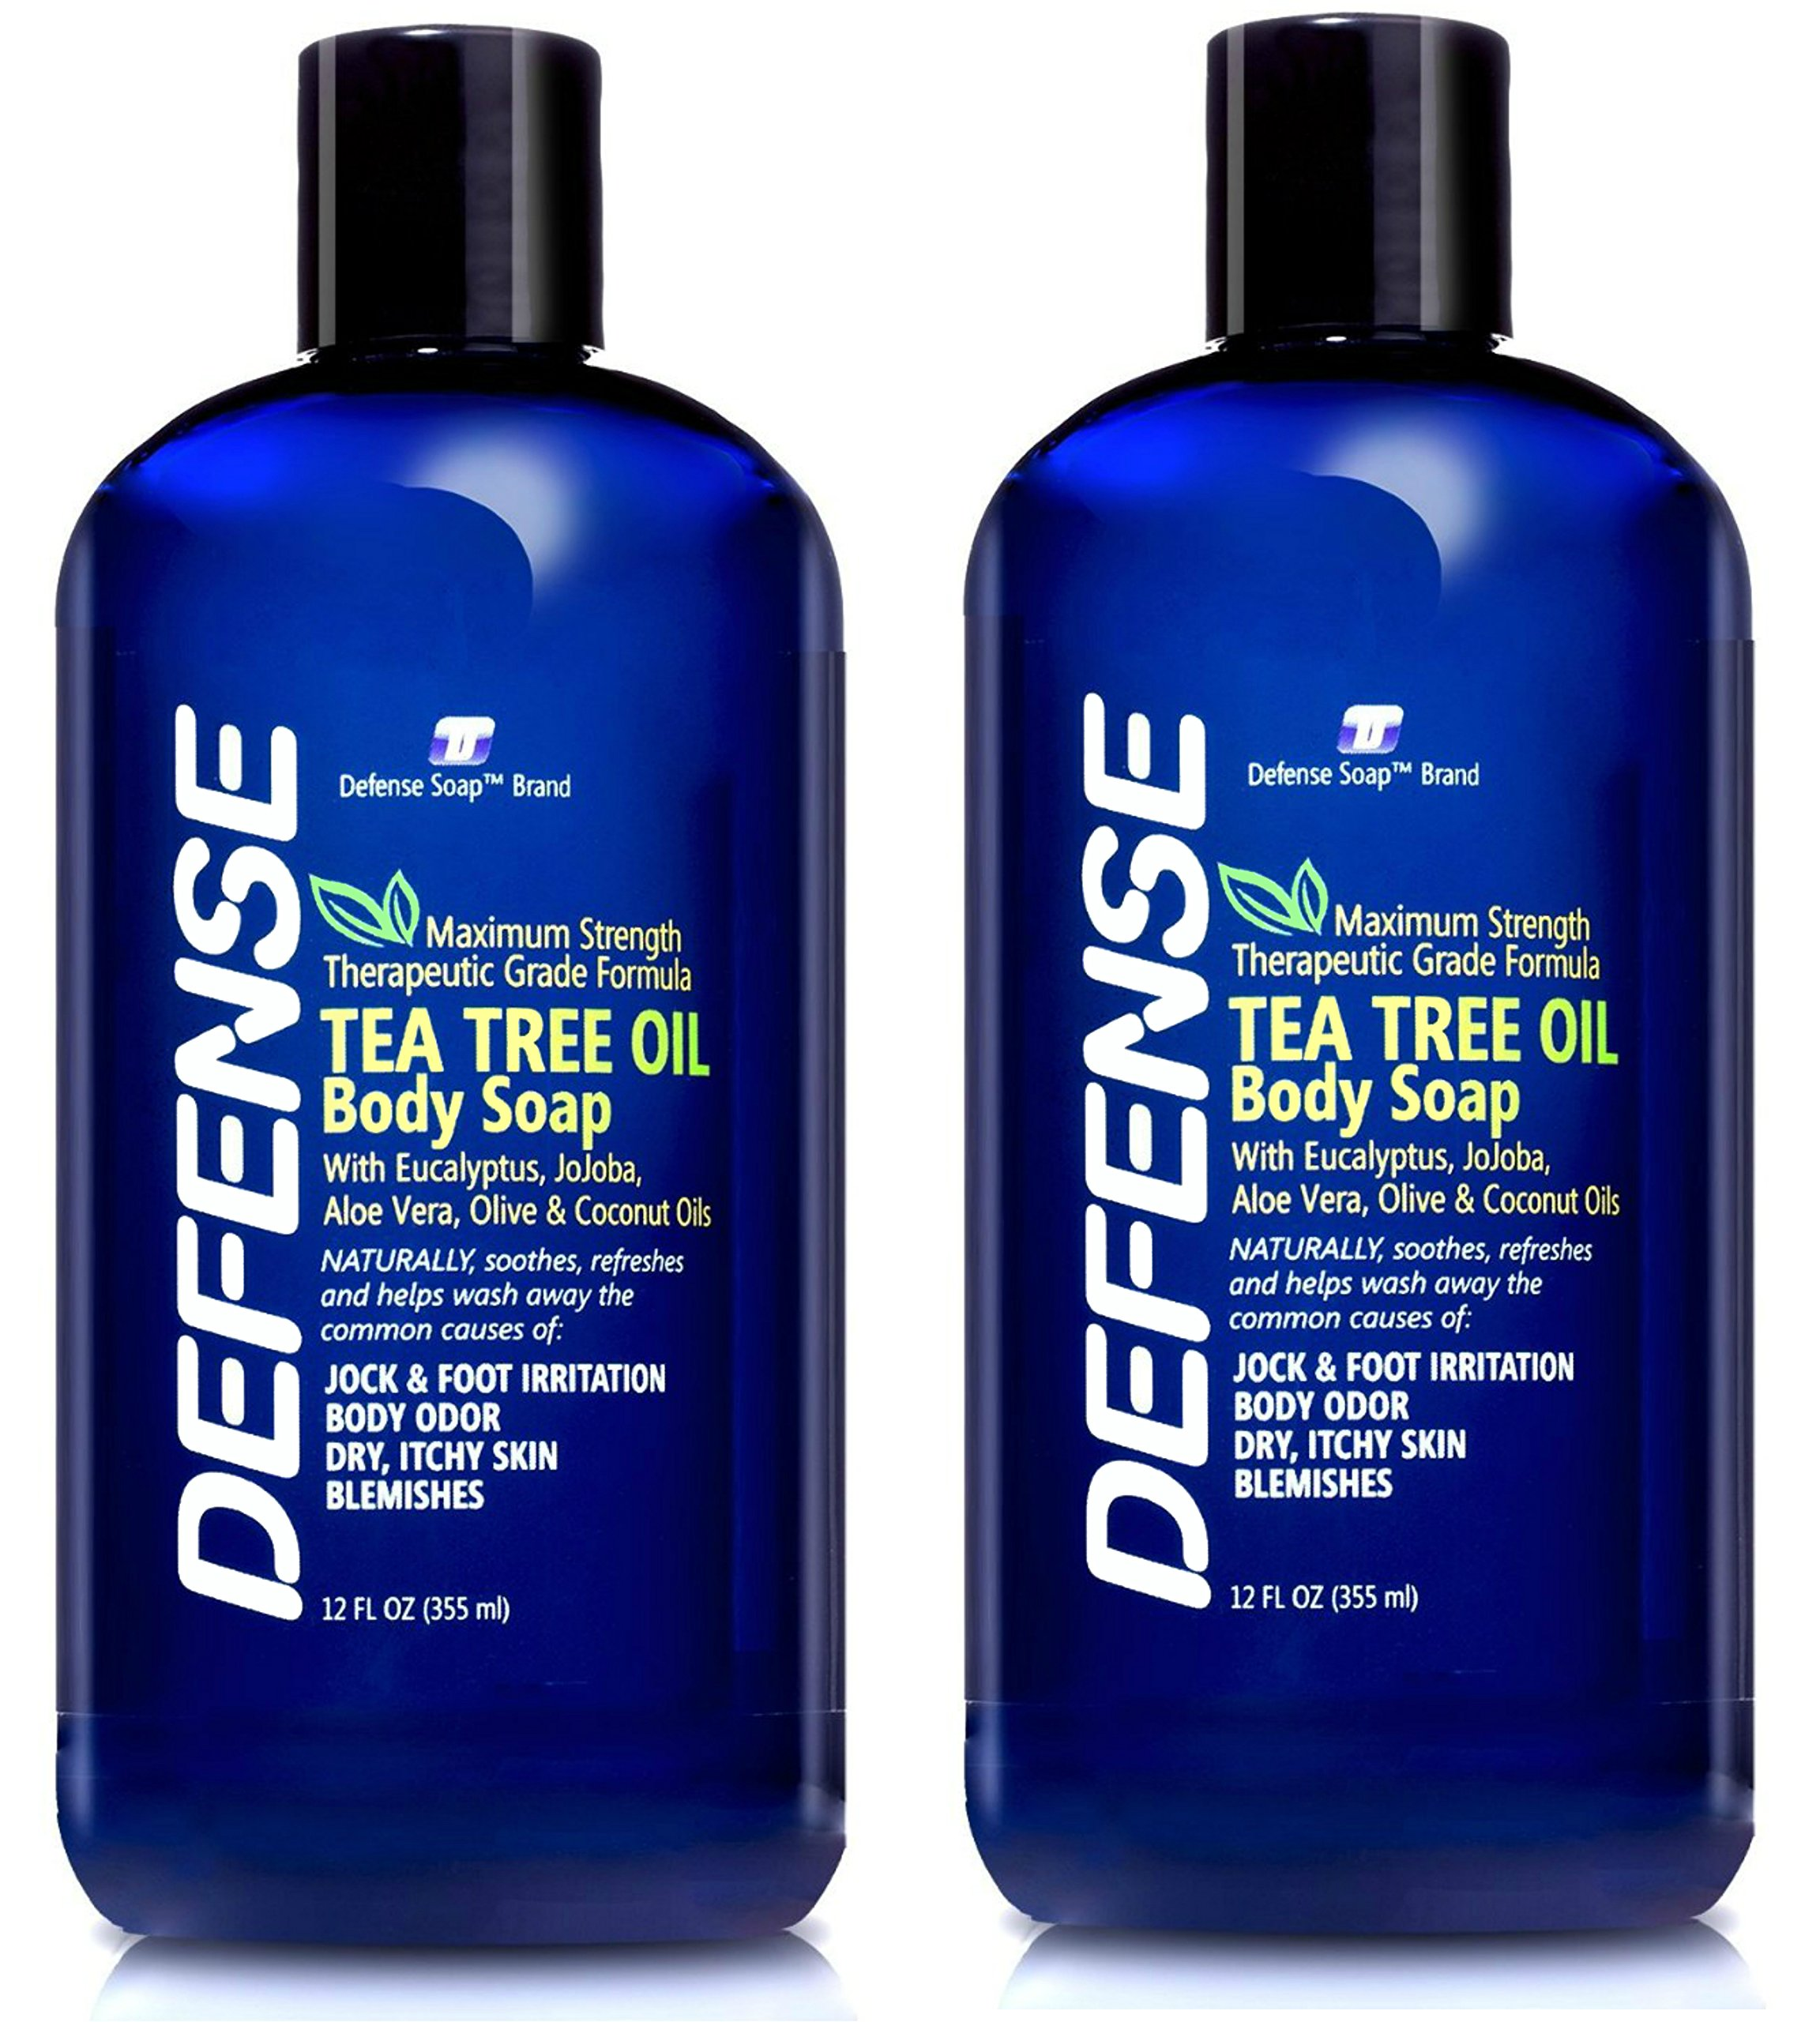 Defense Soap Body Wash Shower Gel 12 Oz (Pack of 2) - Natural Tea Tree Oil by Defense Soap